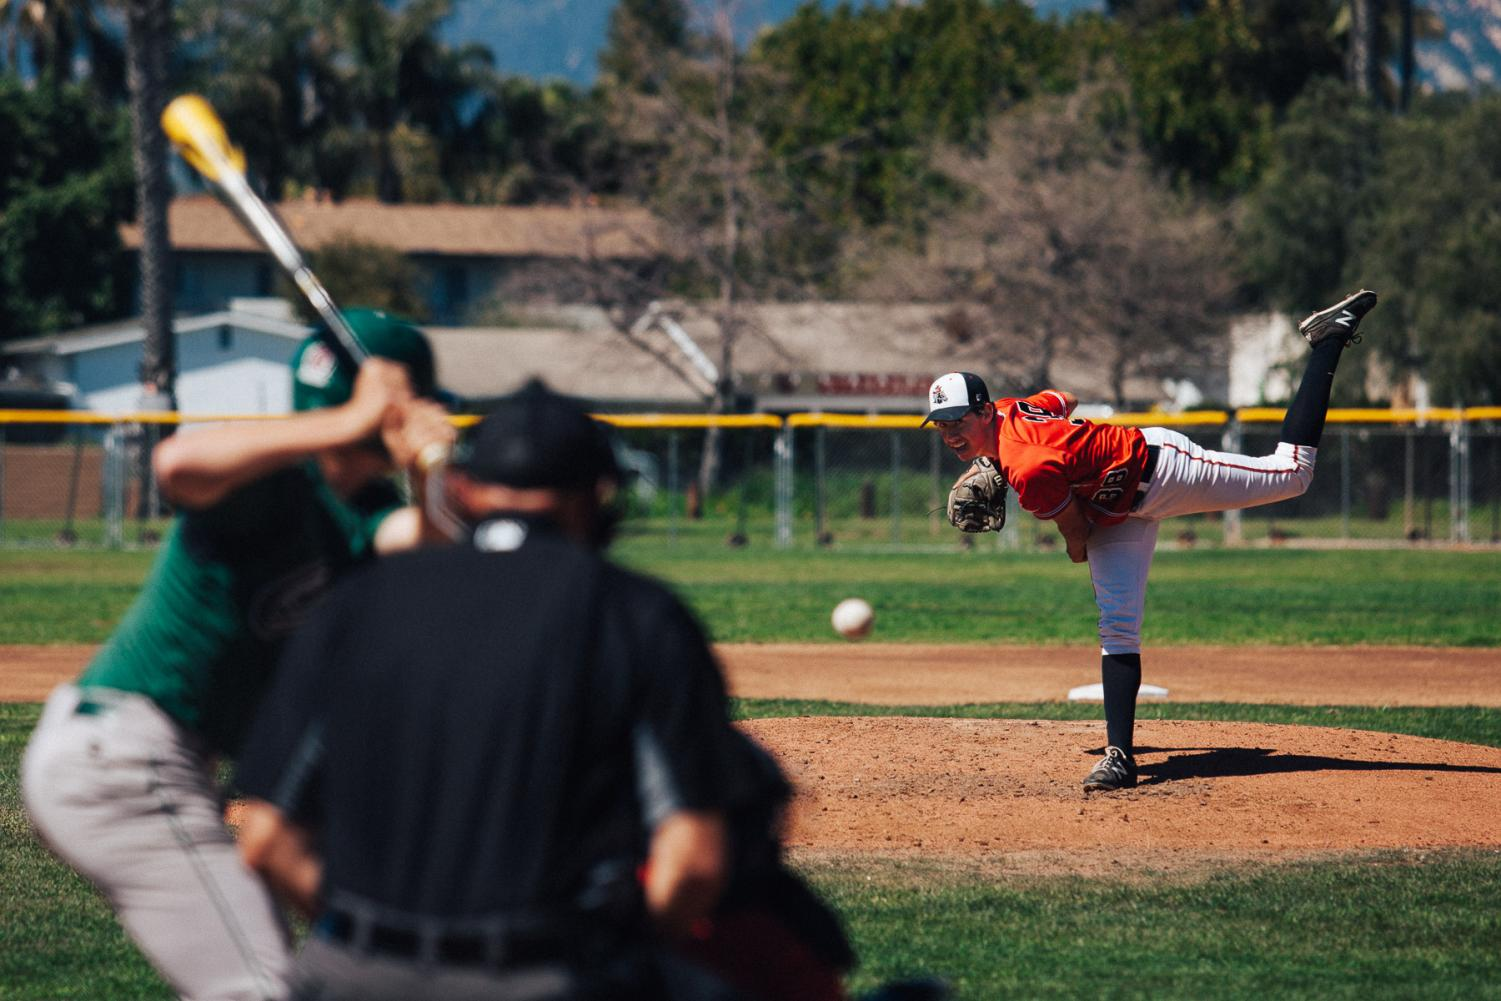 Ian Churchill pitches the ball during a game against Cuesta on Saturday, March 15, 2019, at Pershing Park in Santa Barbara, Calif. The Vaqueros went on to beat Cuesta 3-2.